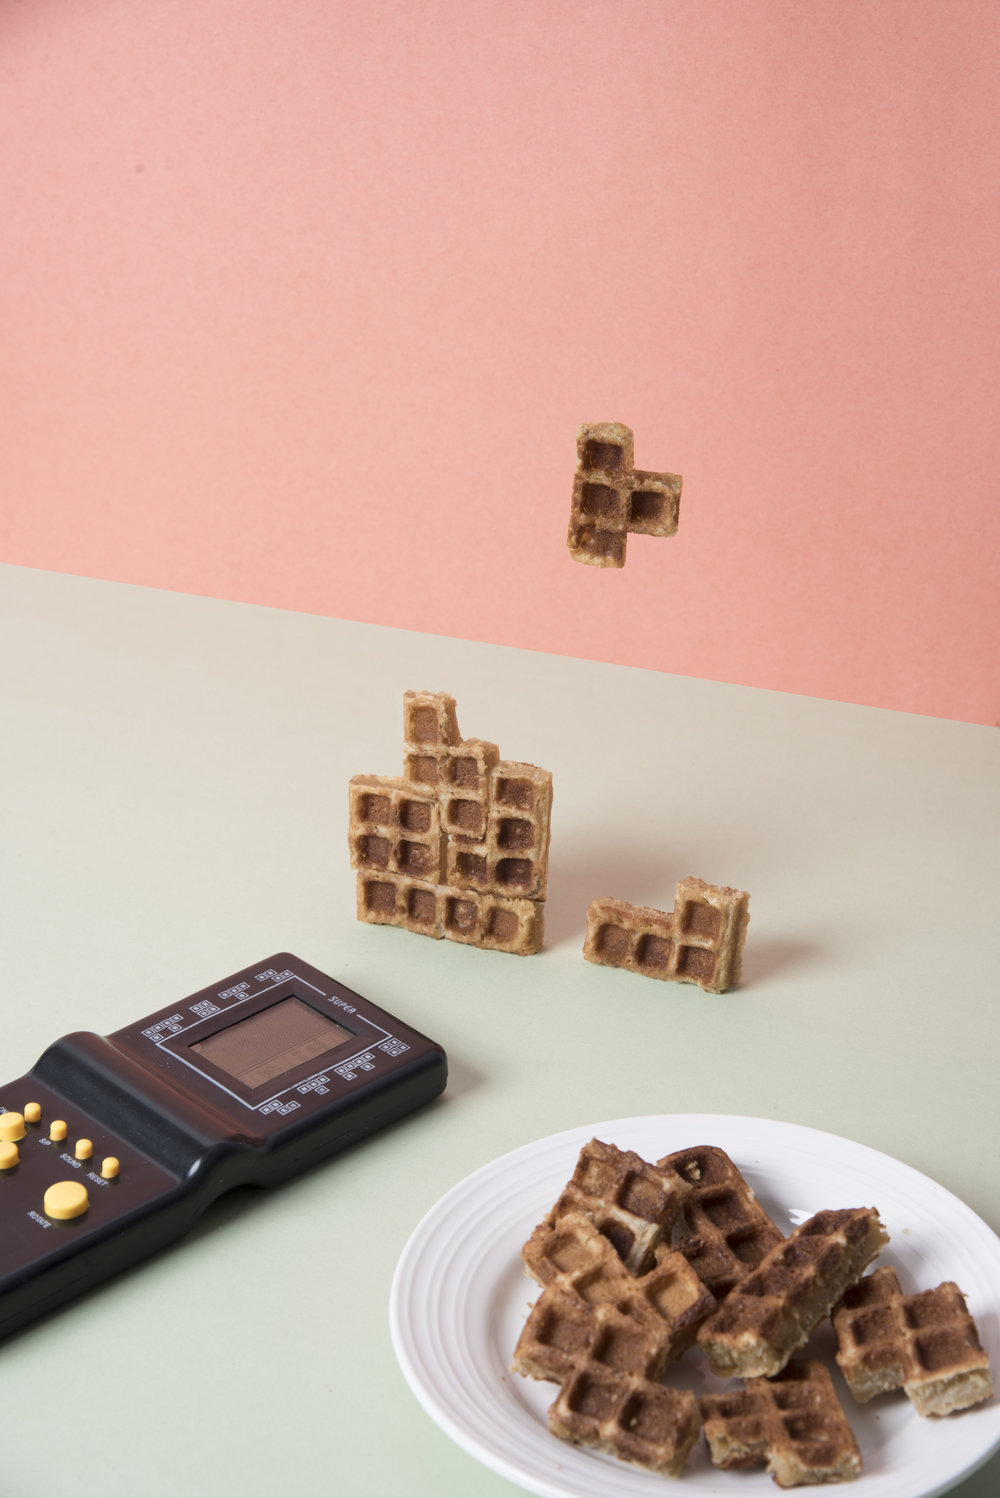 Child's Play: Tetris by Ruo Ling Lu | A Beautiful Distraction